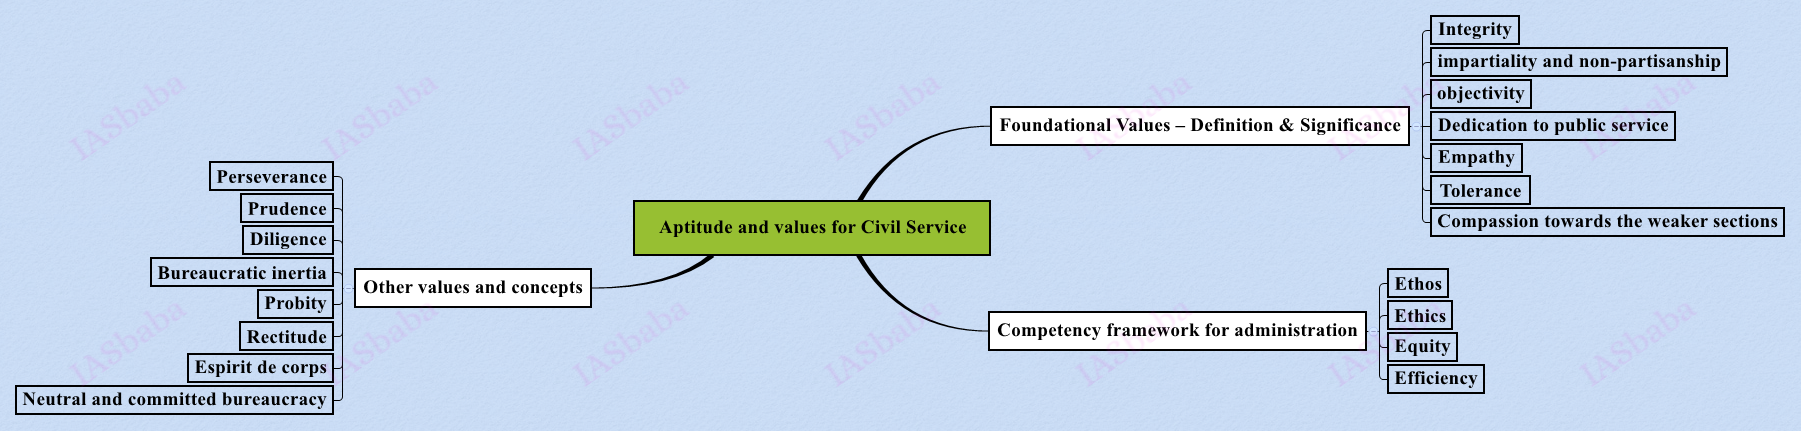 Aptitude-and-values-for-Civil-Service